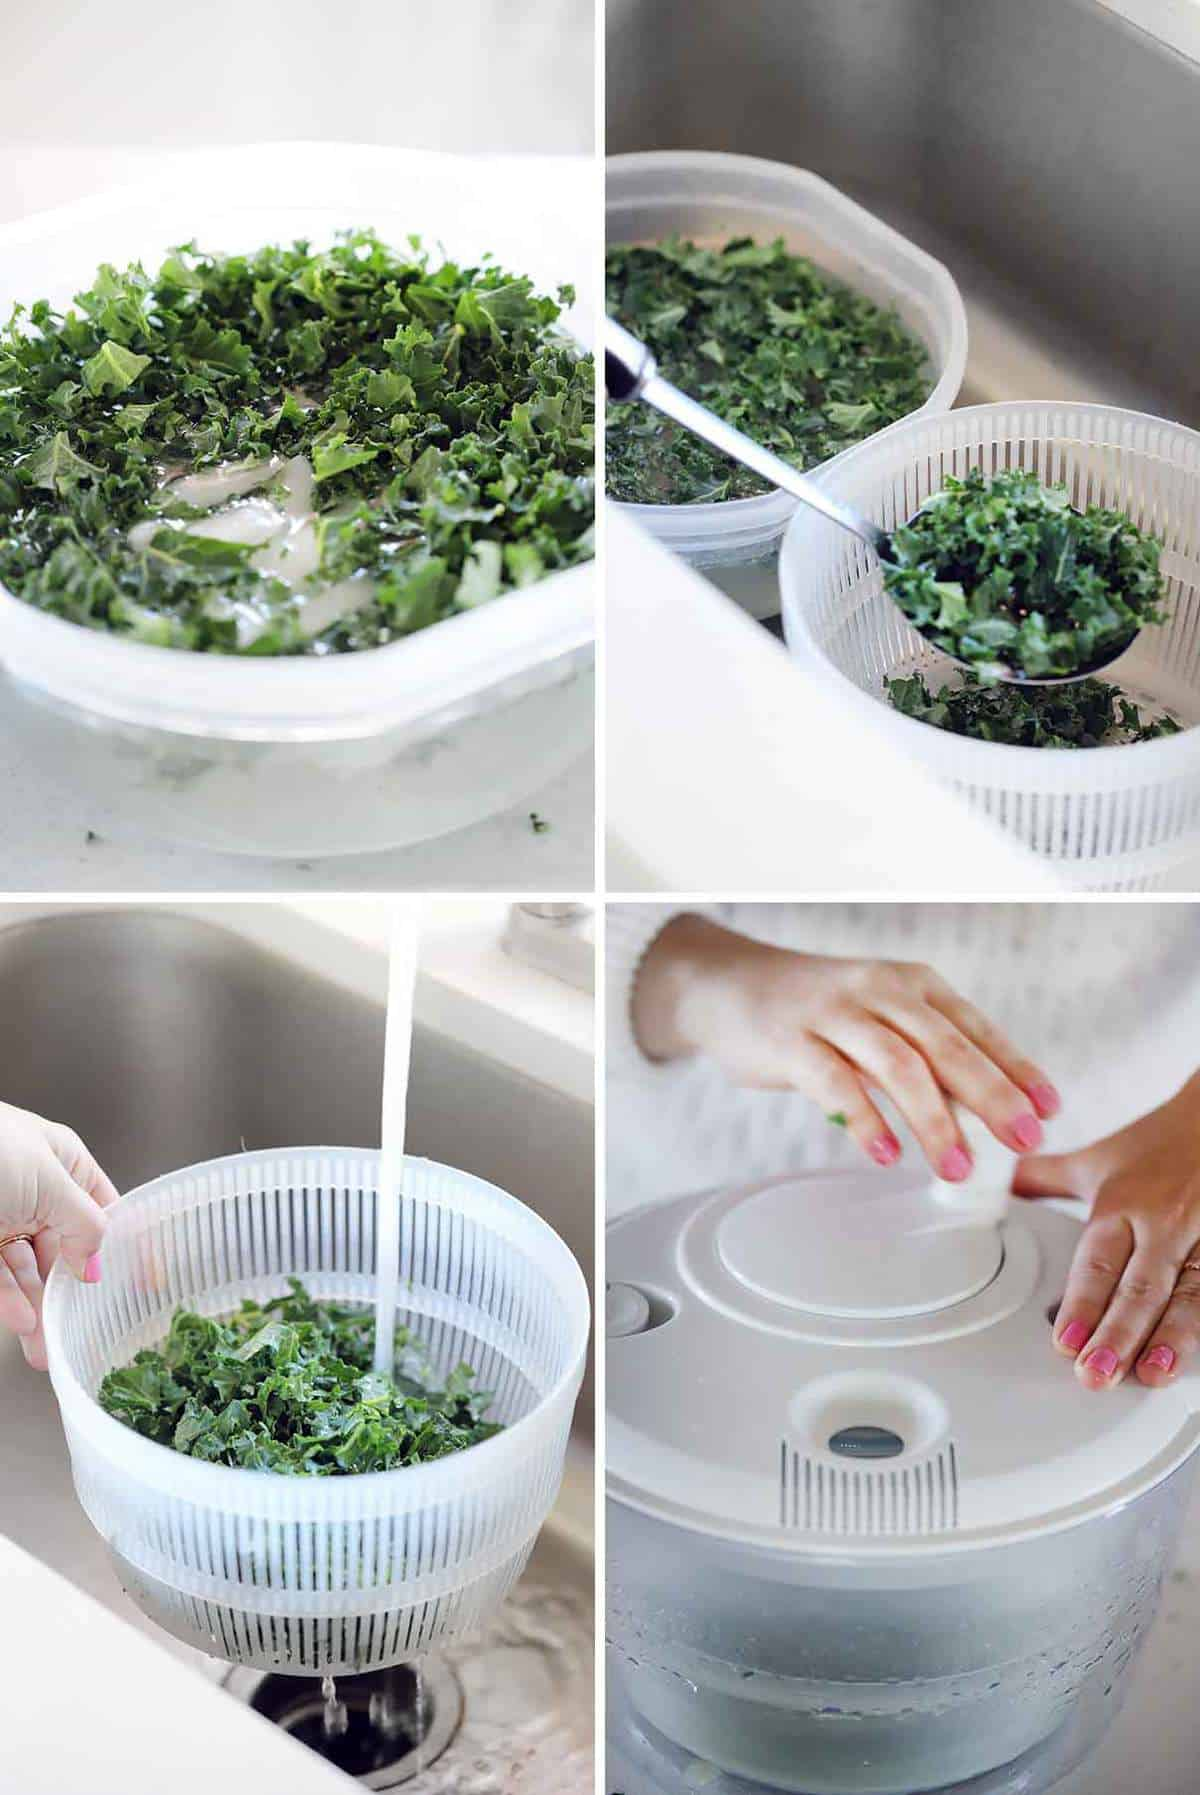 Showing how to soak kale in ice water and wash it before spinning it in a salad spinner.